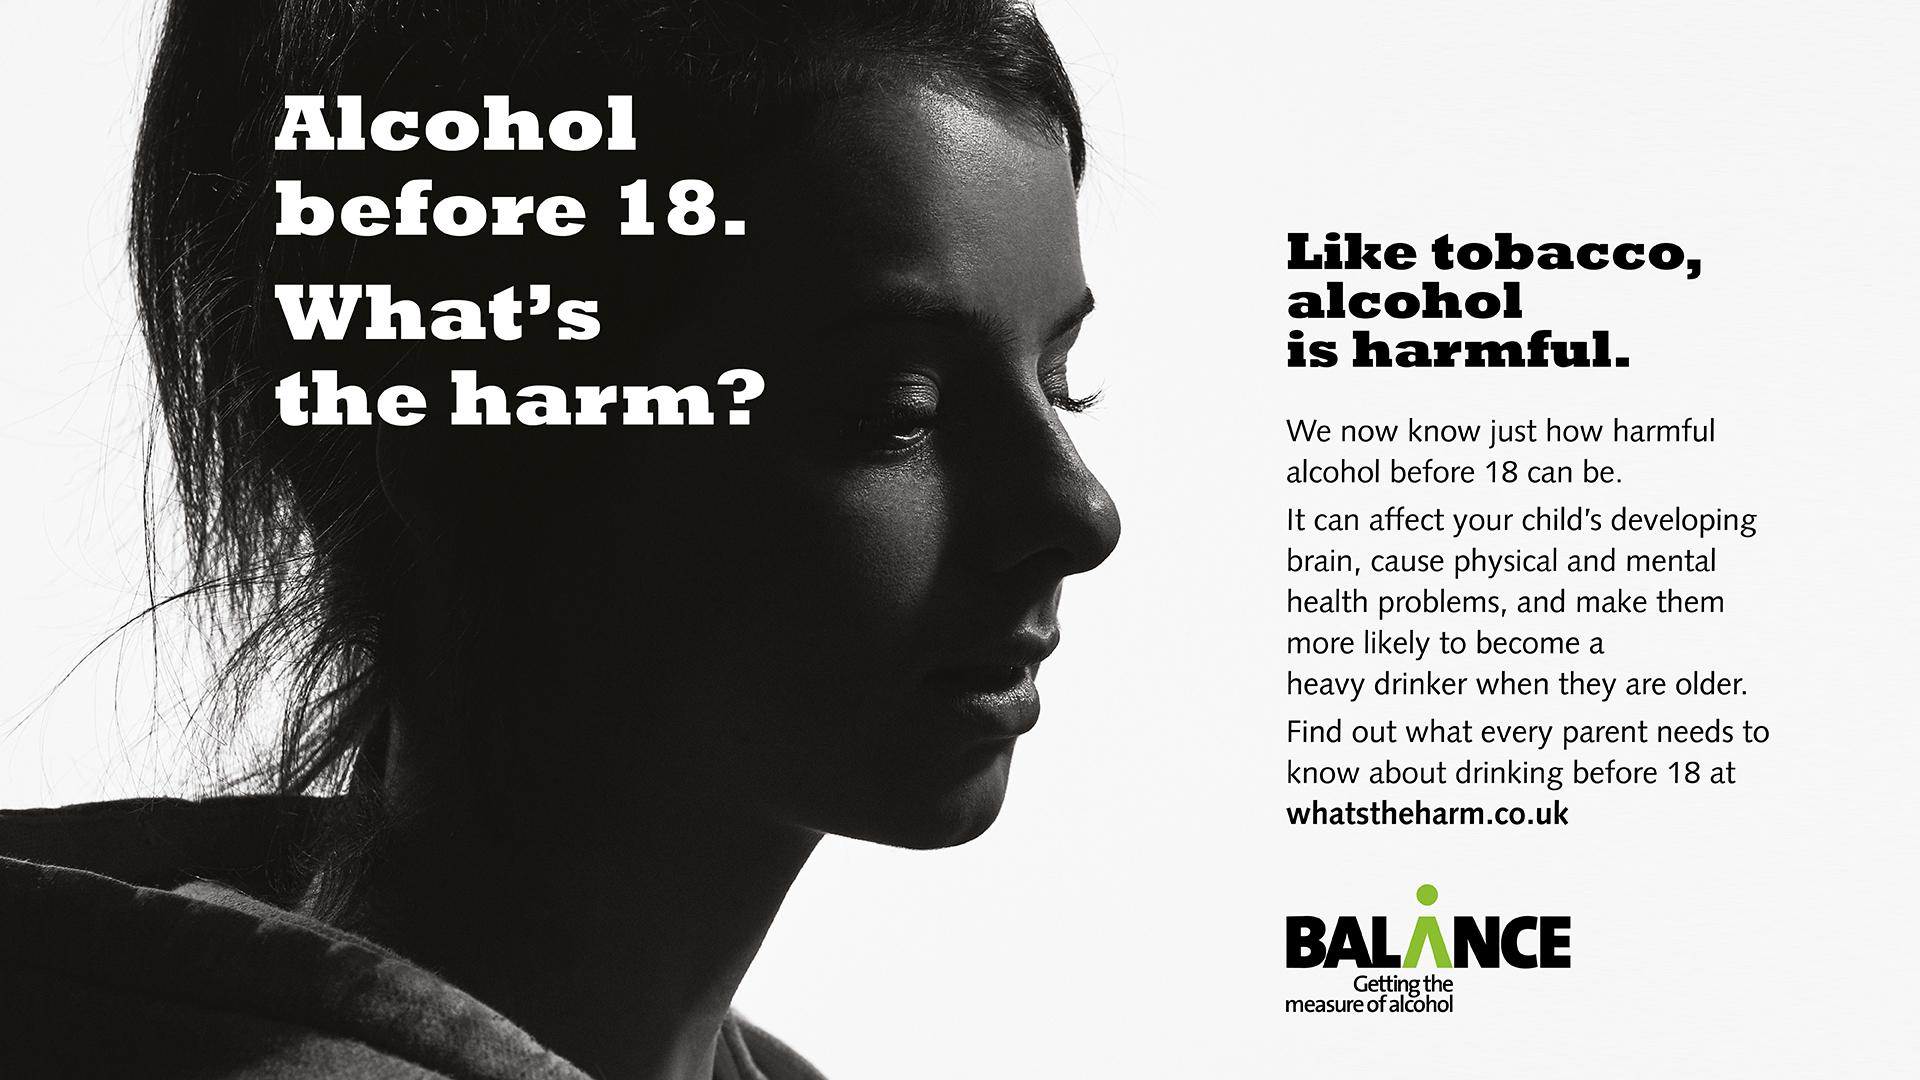 What is the harm campaign